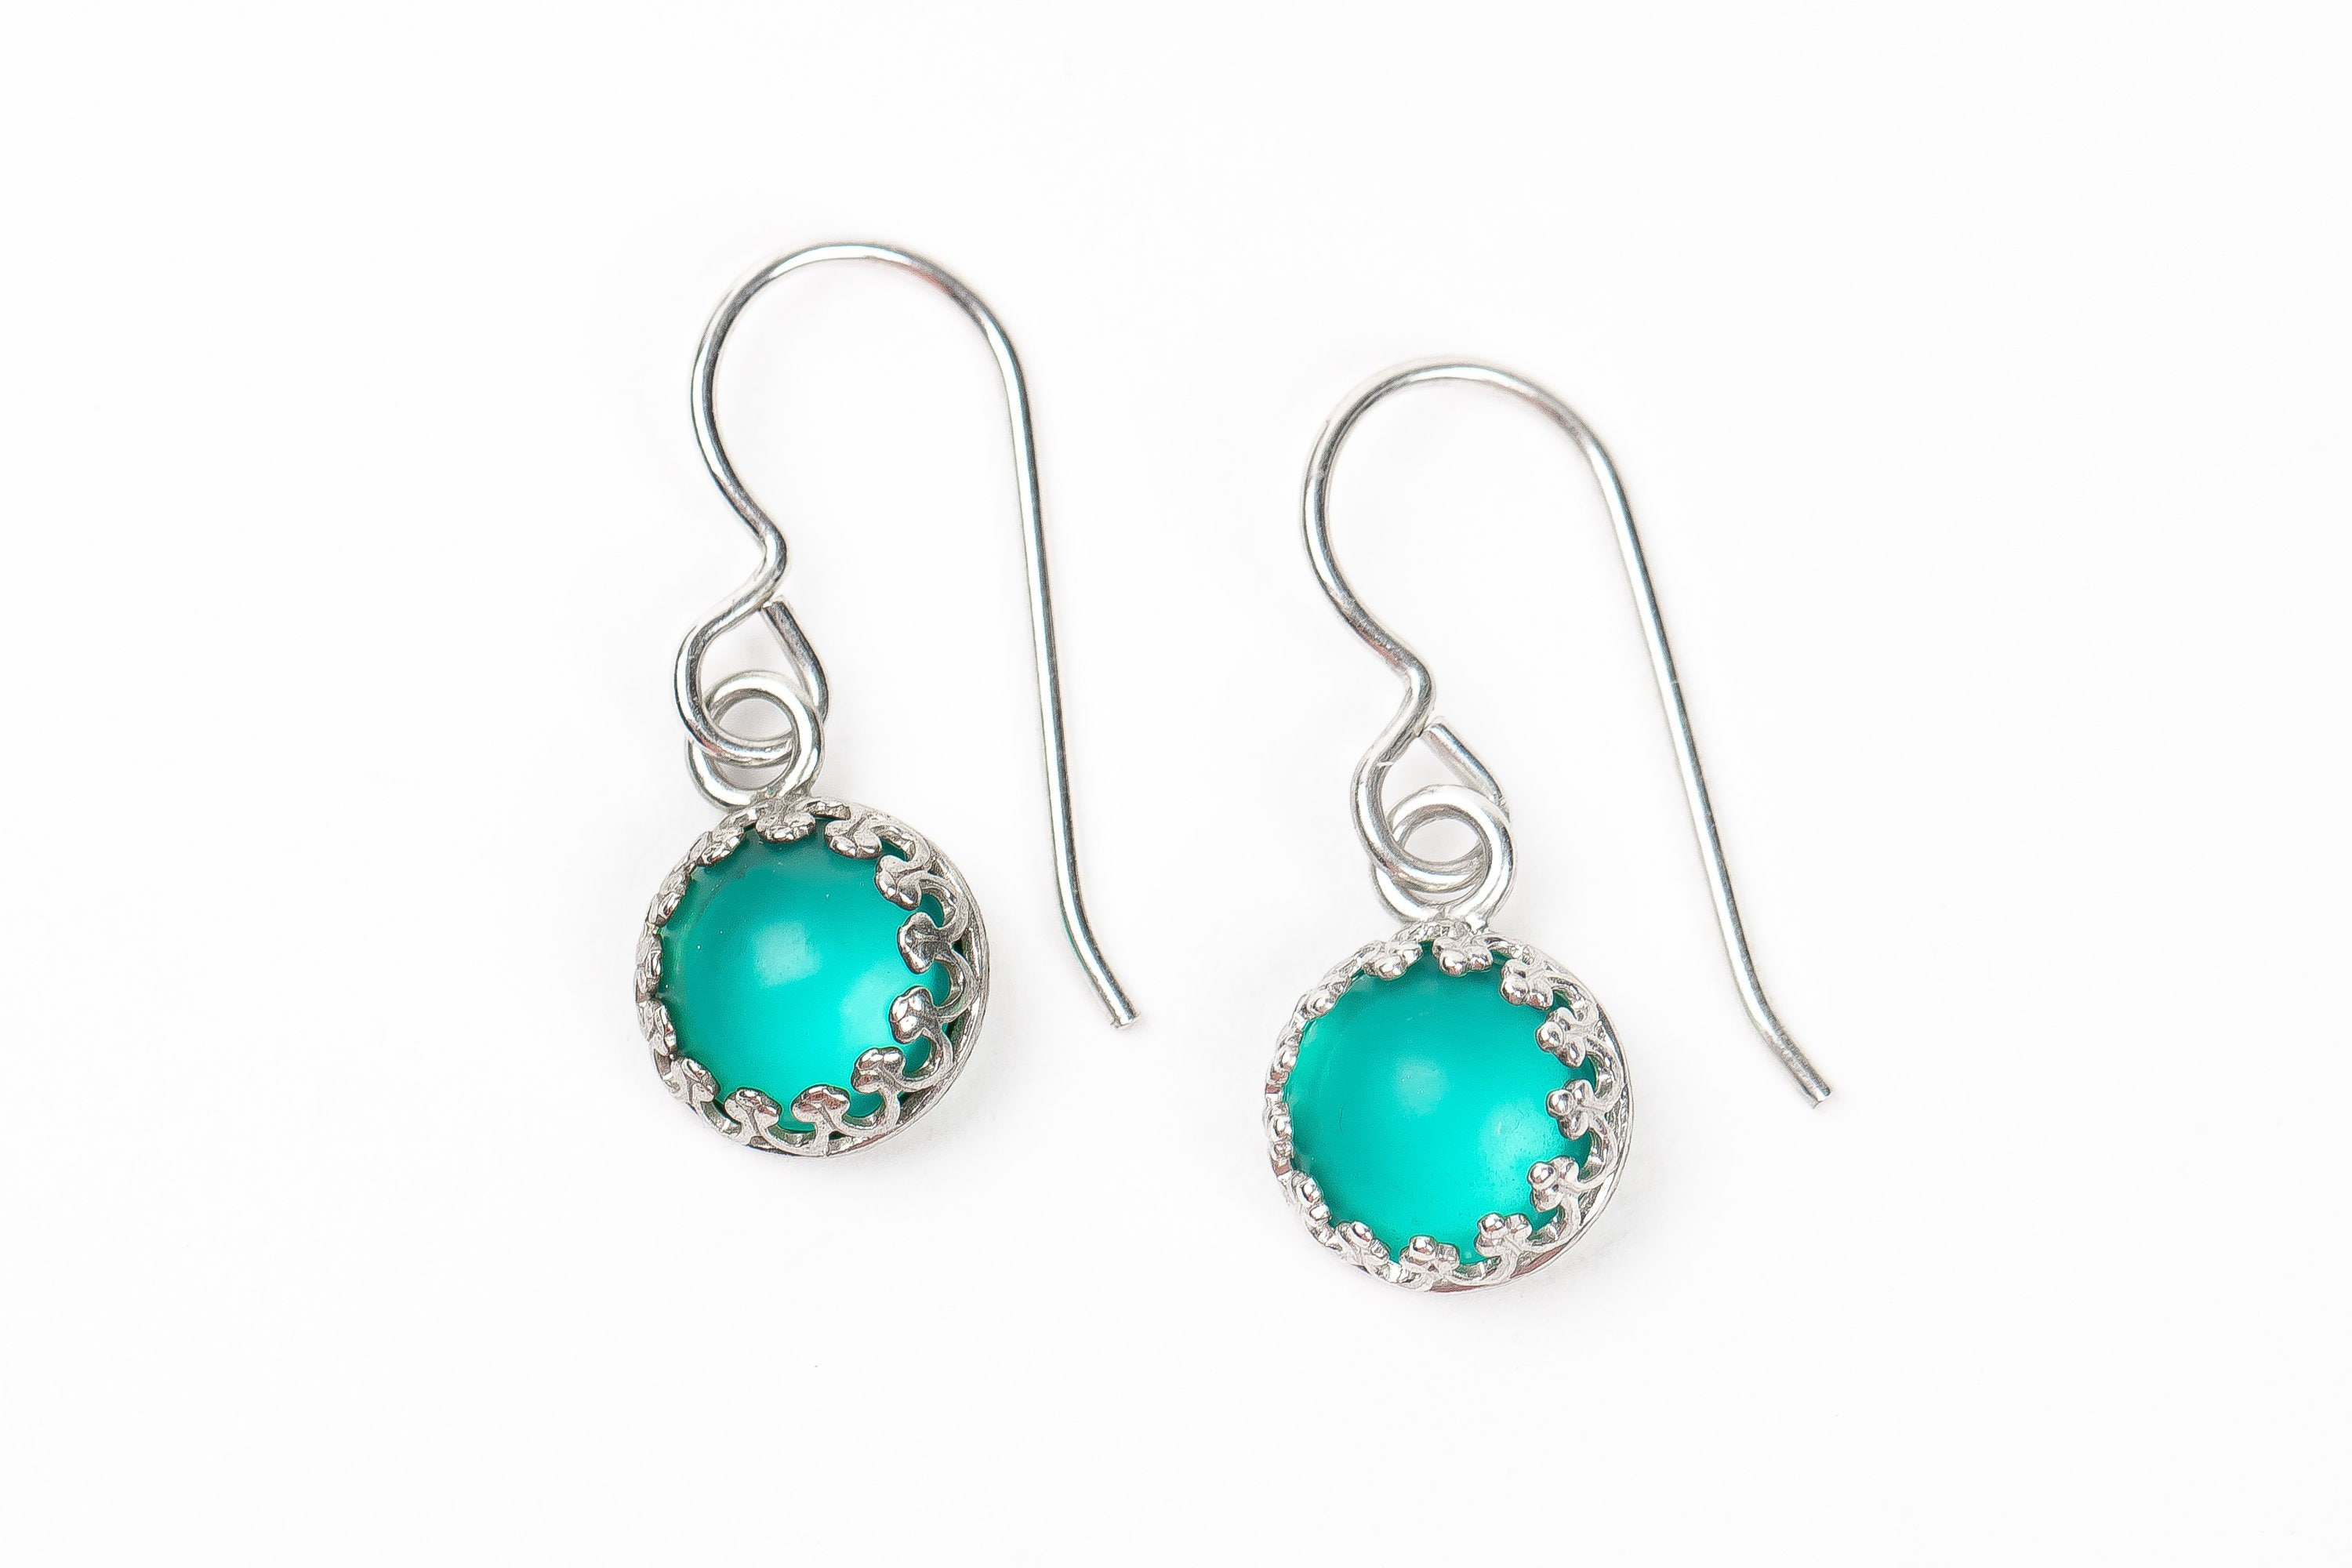 Sterling Silver Drop Dangle Earrings In Teal And Silver